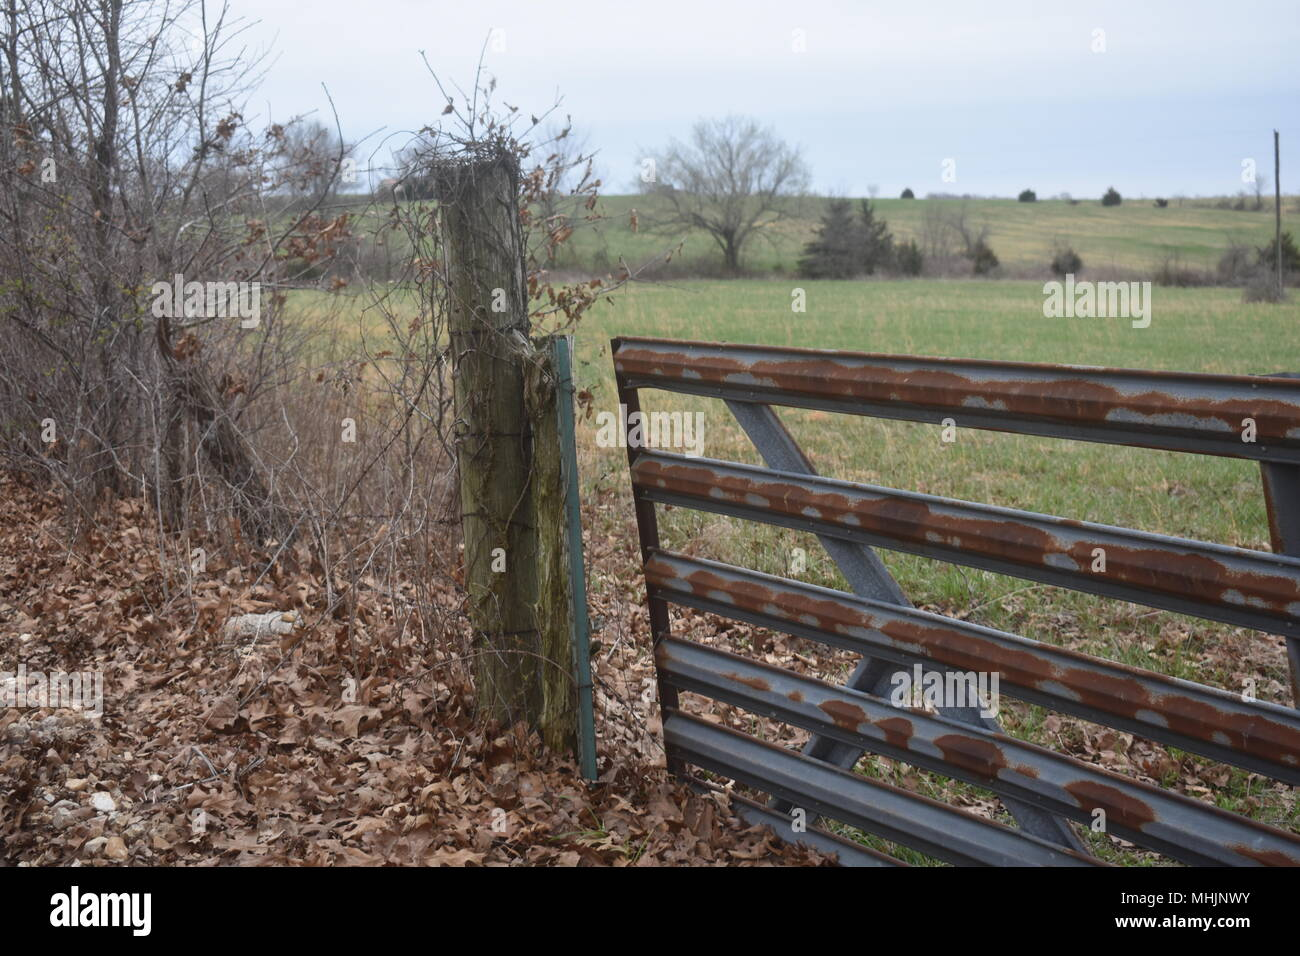 Rusty metal gate opening to pasture land on a cattle farm in rural ...